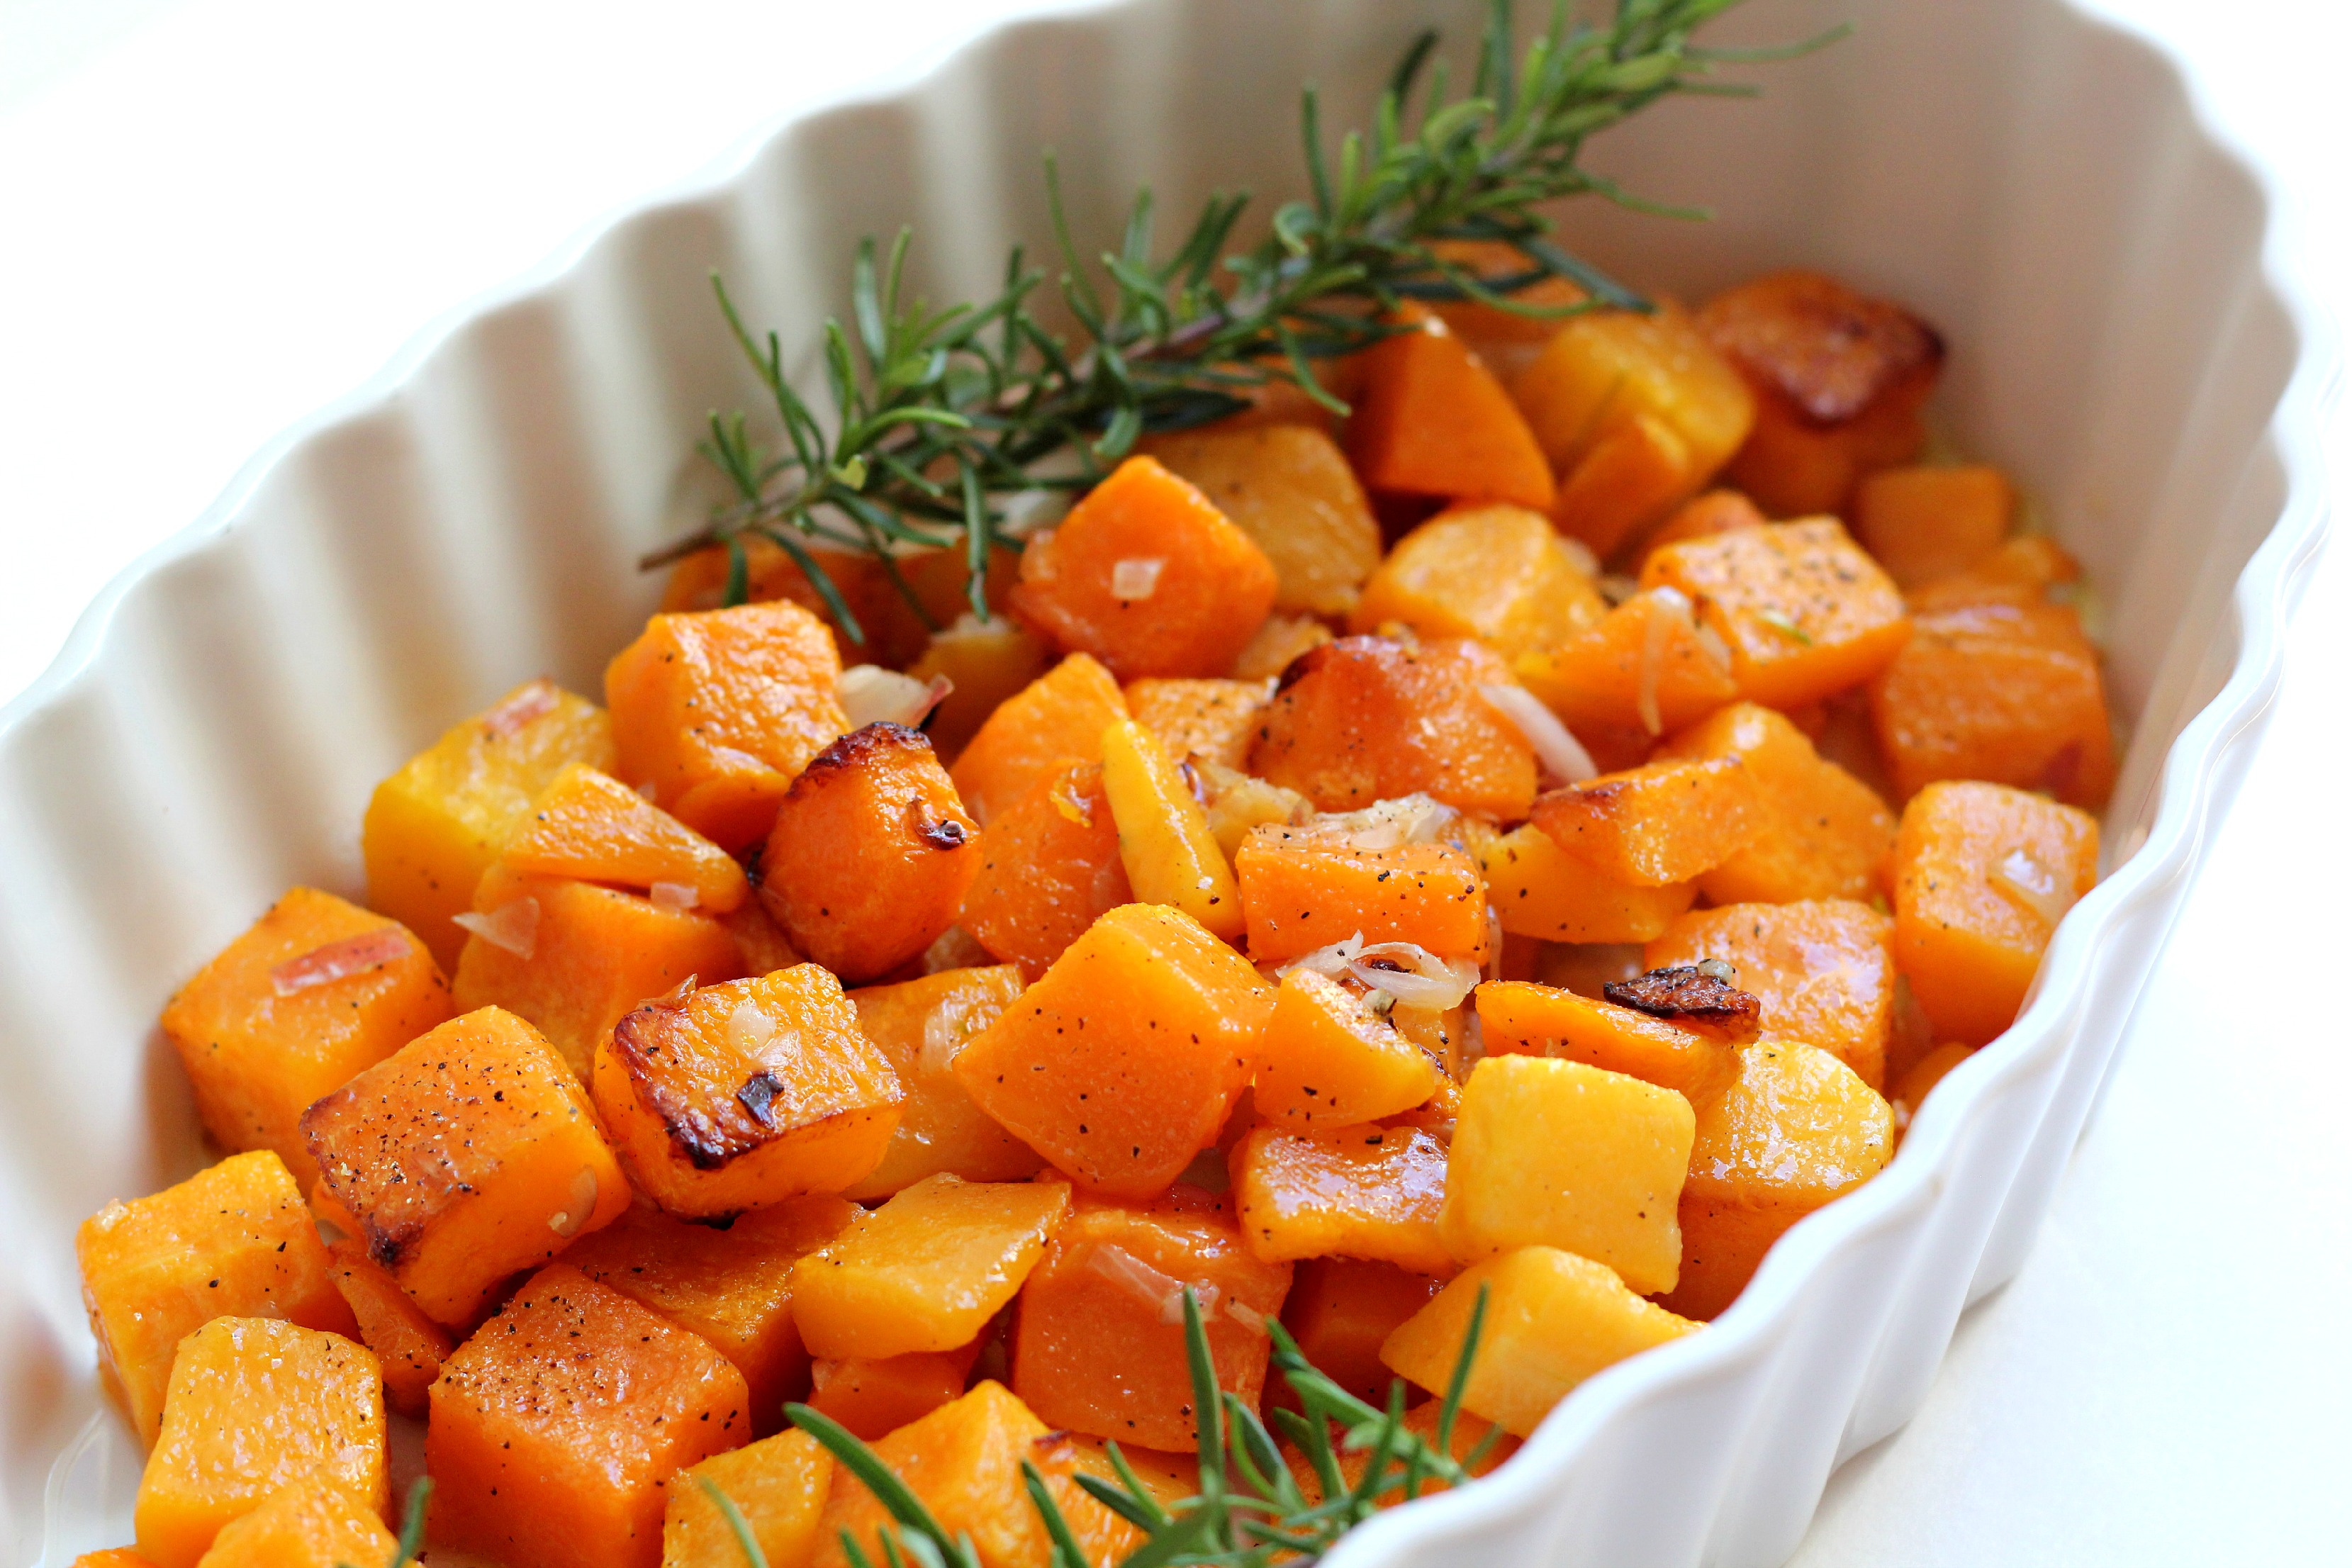 This Shallot and Rosemary Roasted Butternut Squash is a great side dish to accompany any dinner.